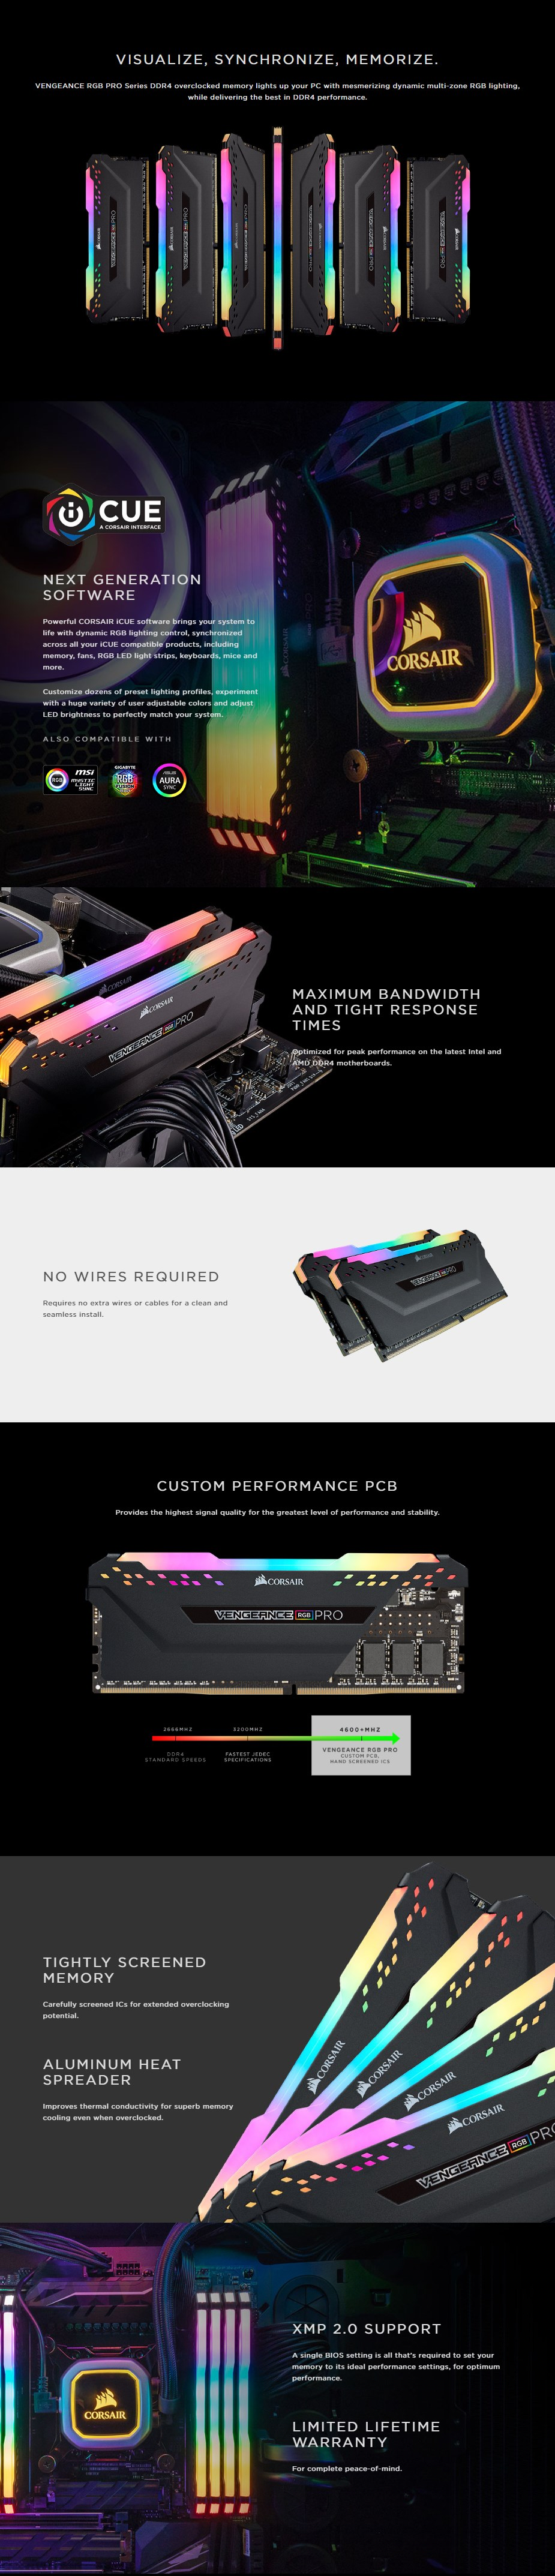 Corsair Vengeance RGB Pro 128GB (8x 16GB) DDR4 3800MHz Memory - Overview 1